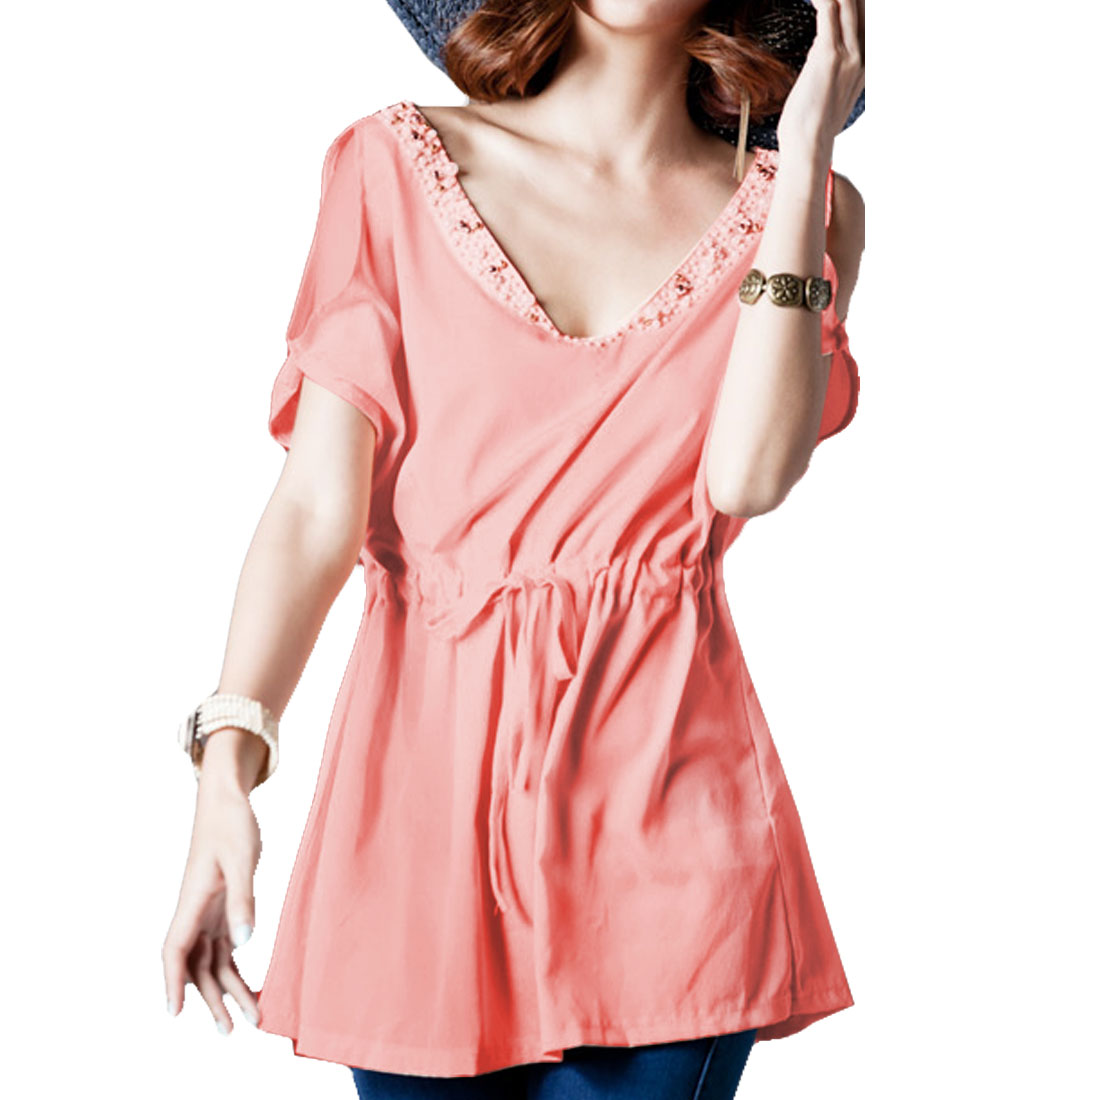 Pink Batwing Sleeve Plastic Bead Decor Front Off Shoulder Blouse Tops for Women S